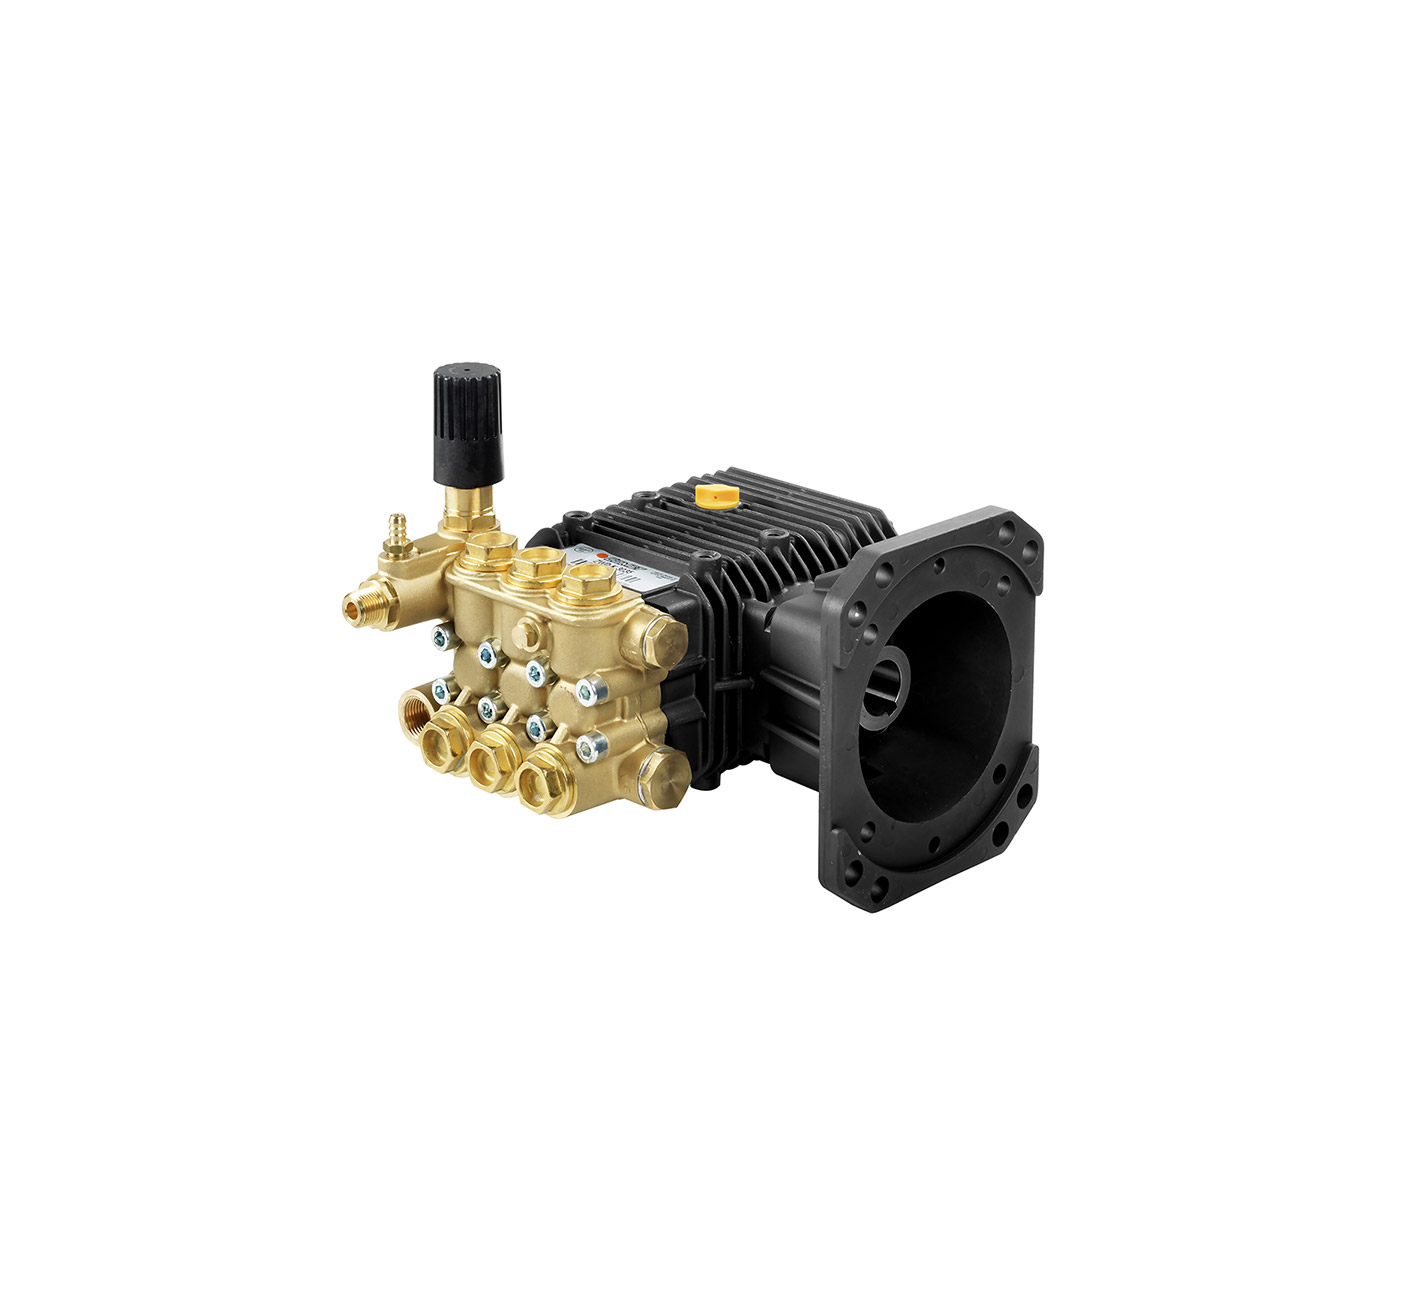 zwd-k g 1 Comet Industrial Pumps